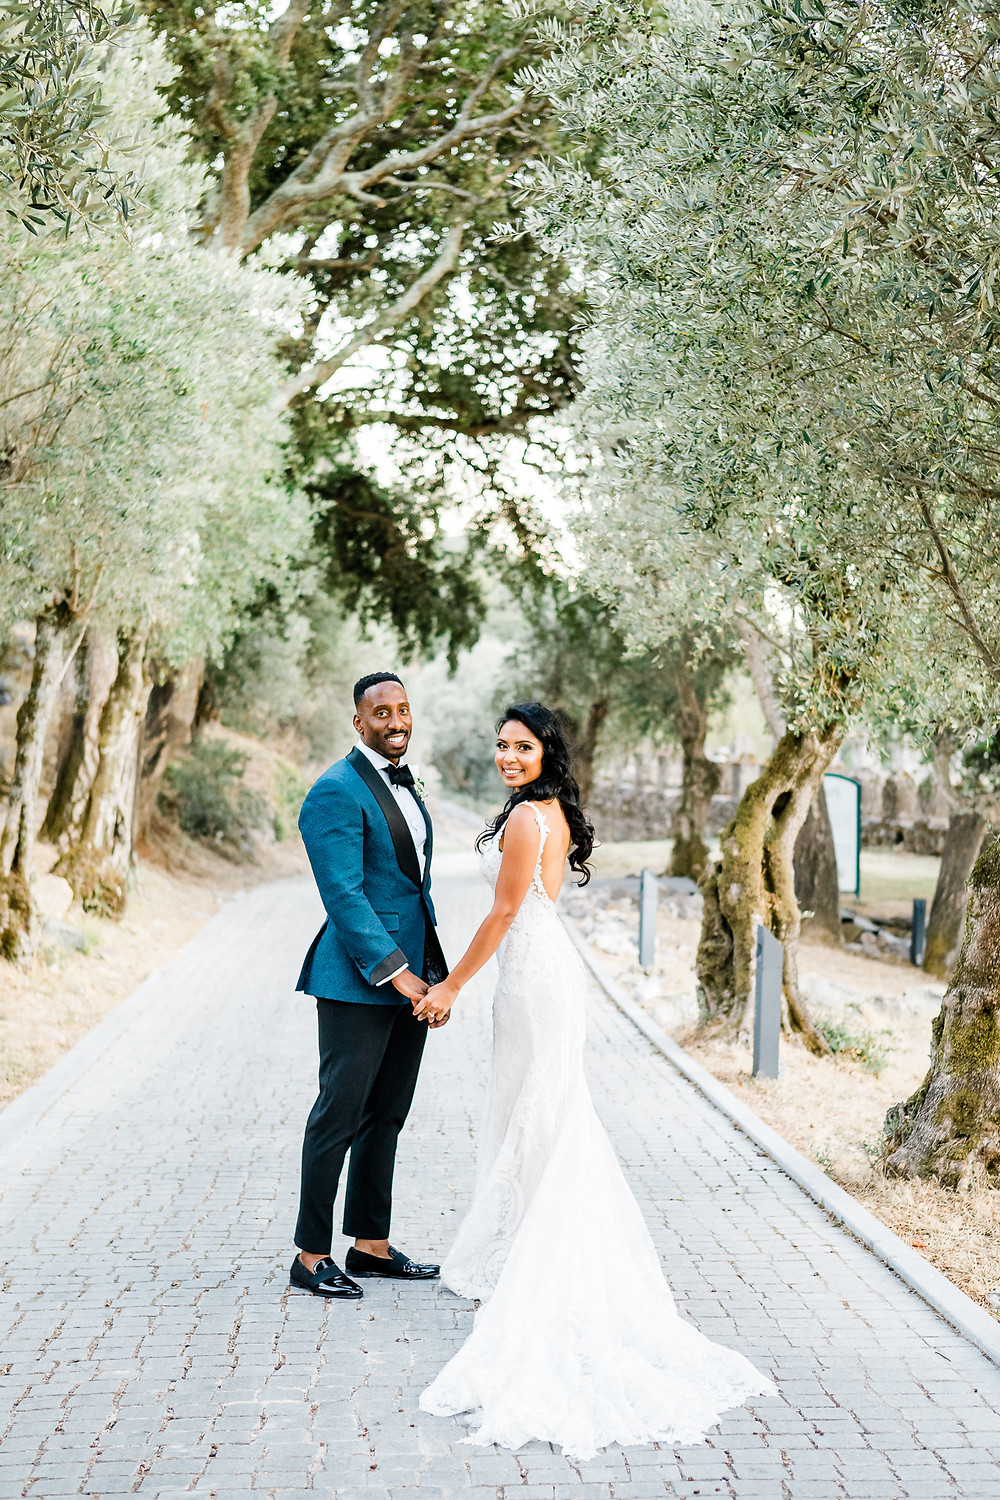 Top 5 wedding photographers in Portugal - Atmosphere Photography